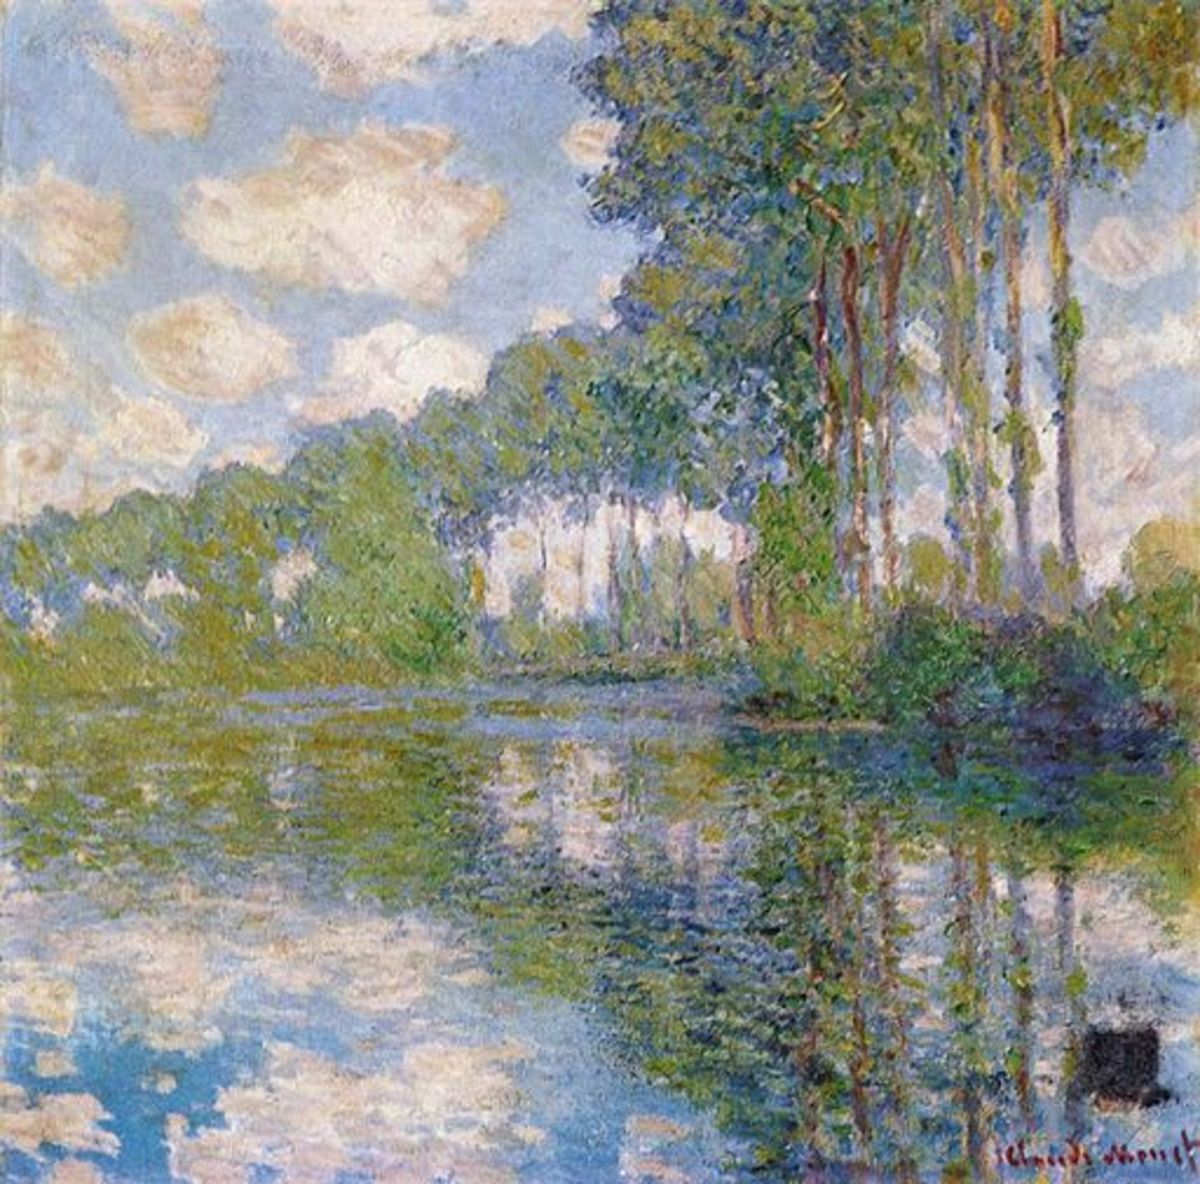 Beautiful color palette and composition in this painting by Monet.